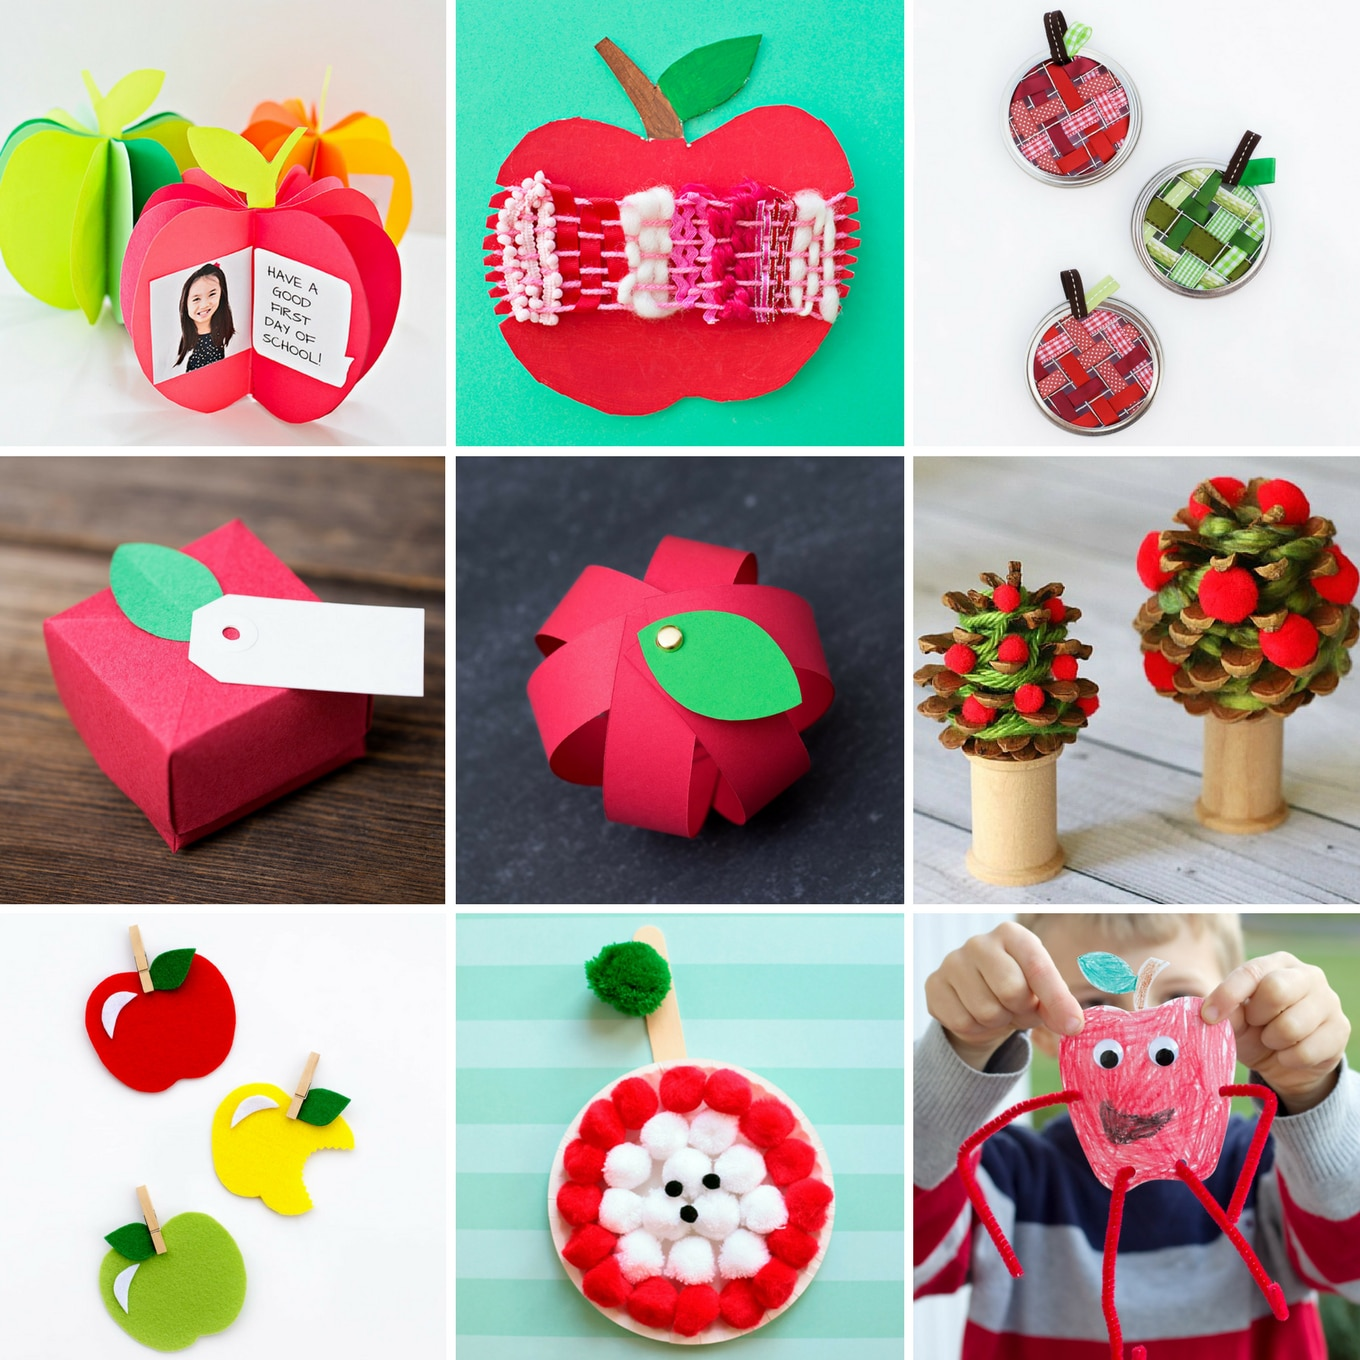 Simple Apple Crafts for Kids